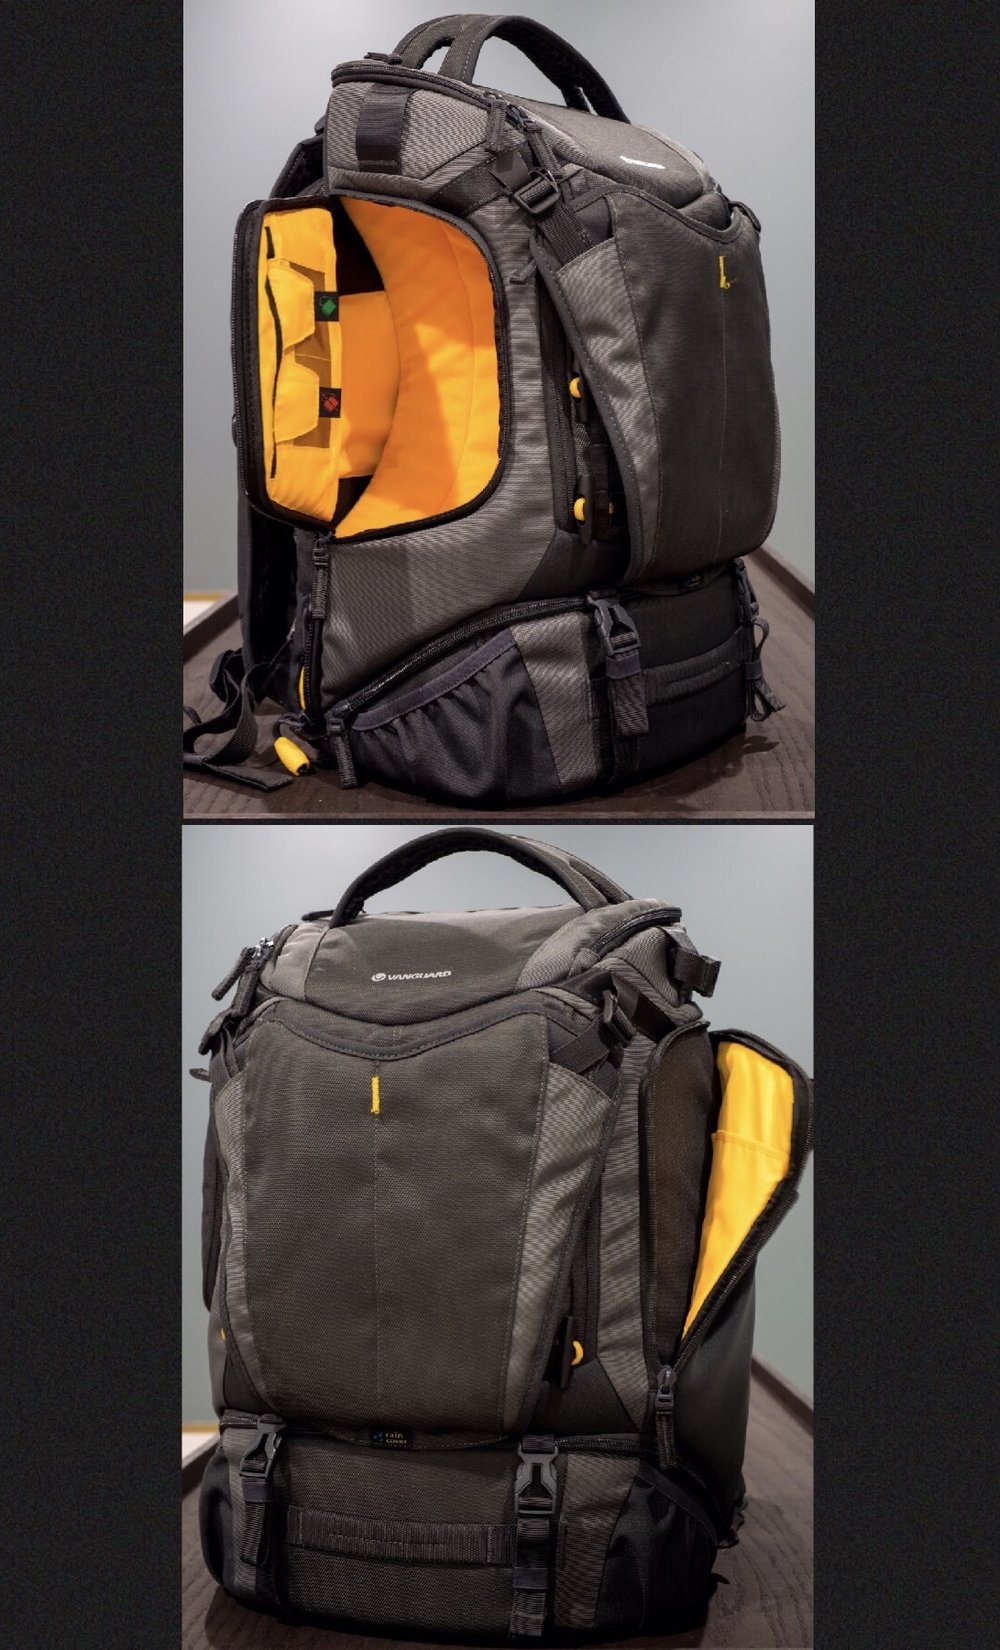 Vanguard Alta Sky 51D side pockets